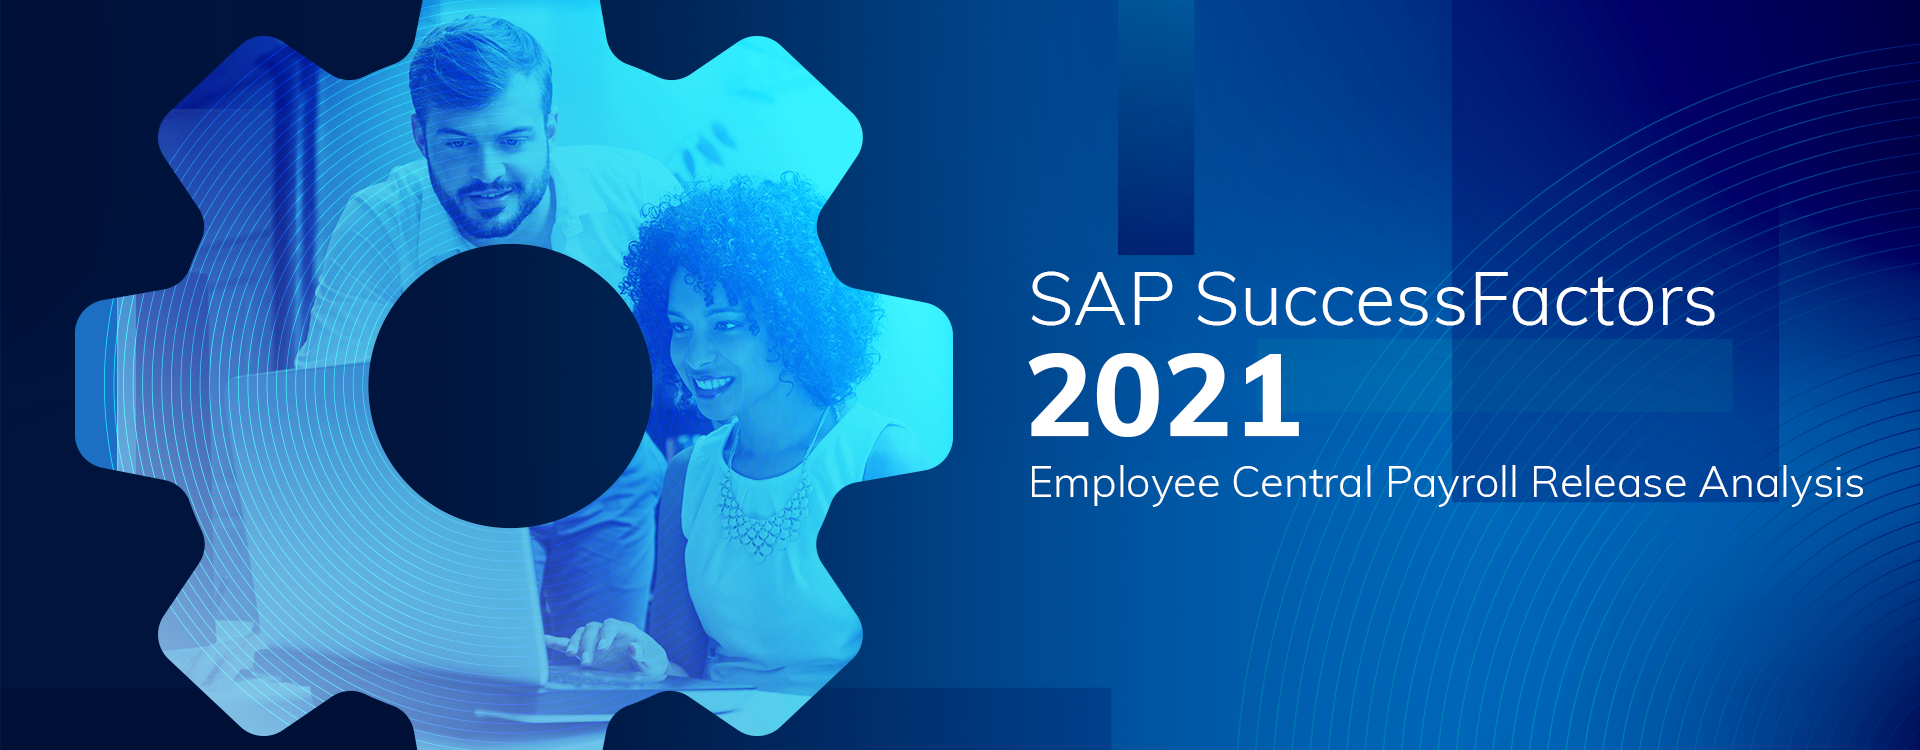 SAP SuccessFactors H1 2021 Employee Central Payroll Release Analysis featured image